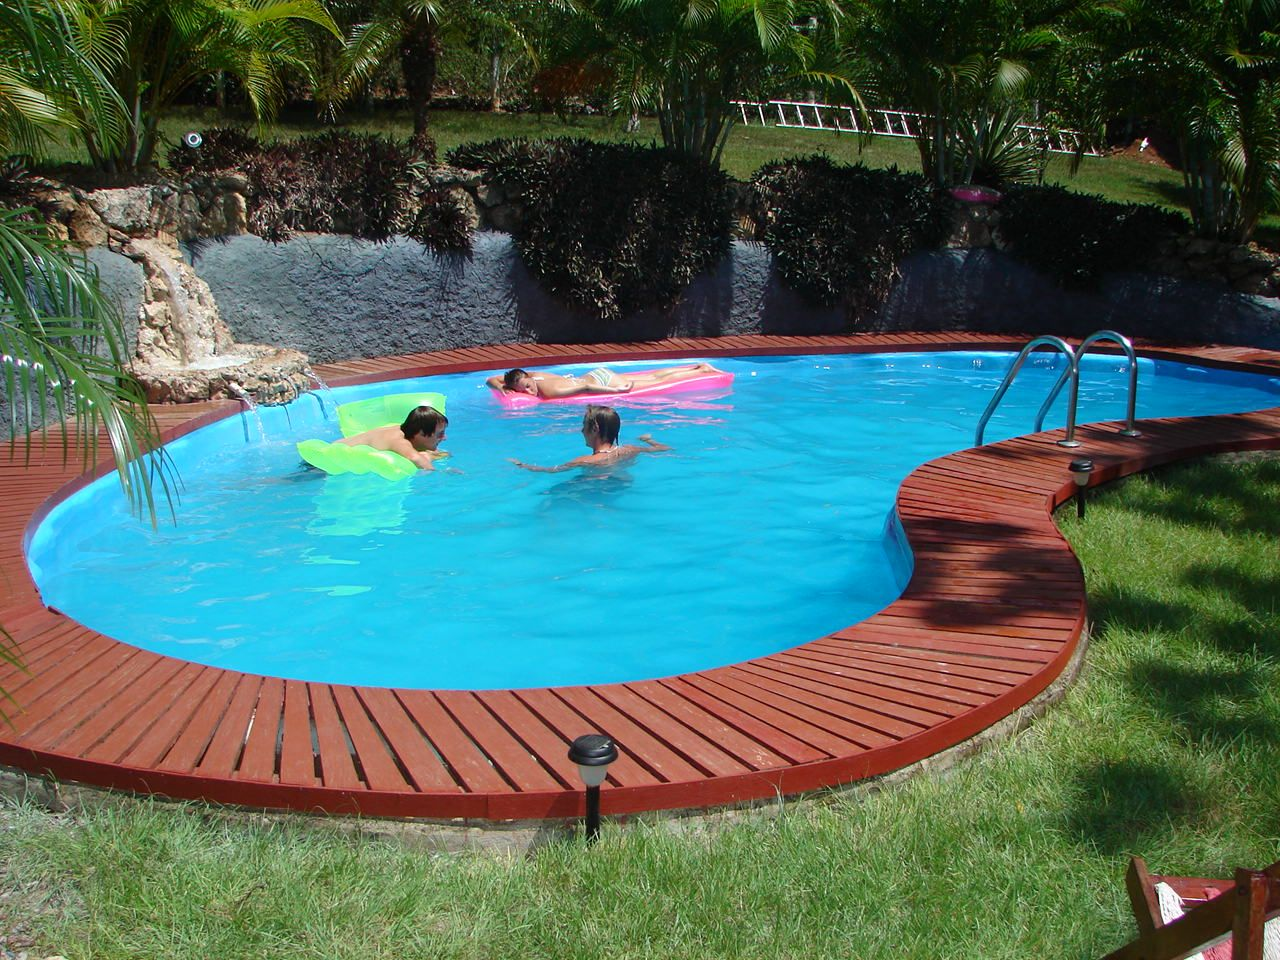 Pool Landscaping | ... pool: A pool can be made exquisite ...